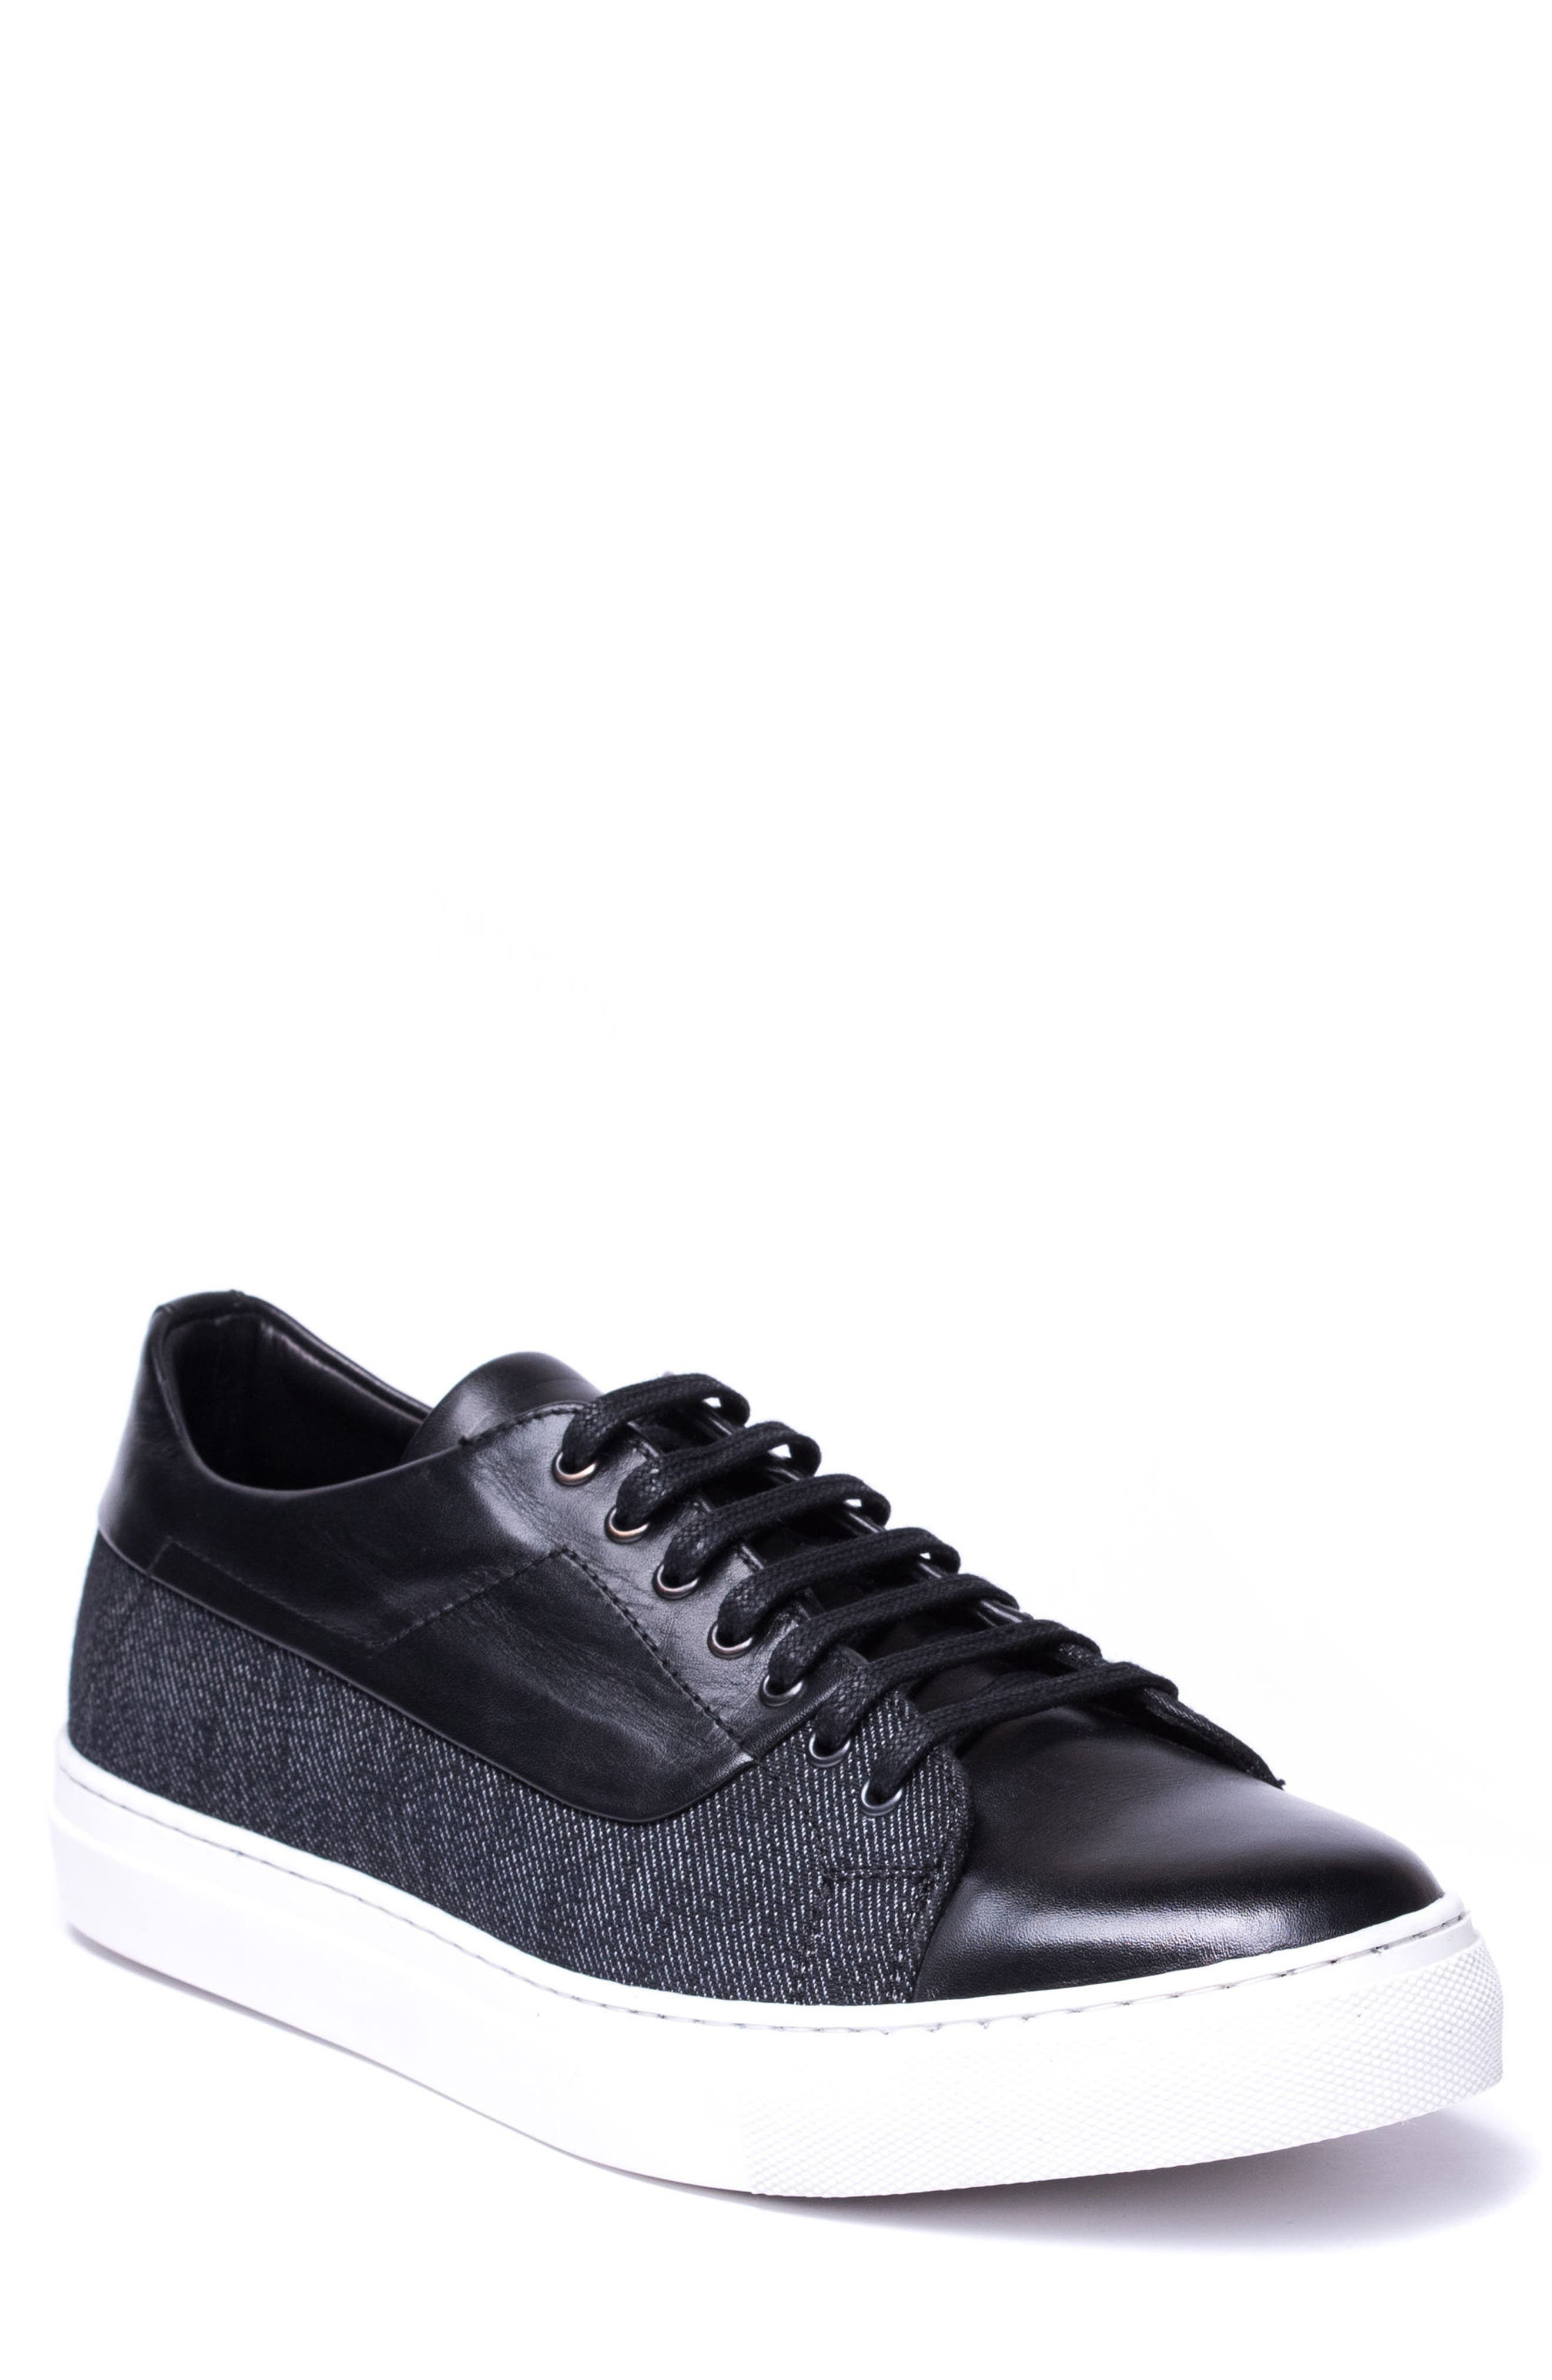 Luke Low Top Sneaker,                             Main thumbnail 1, color,                             BLACK LEATHER